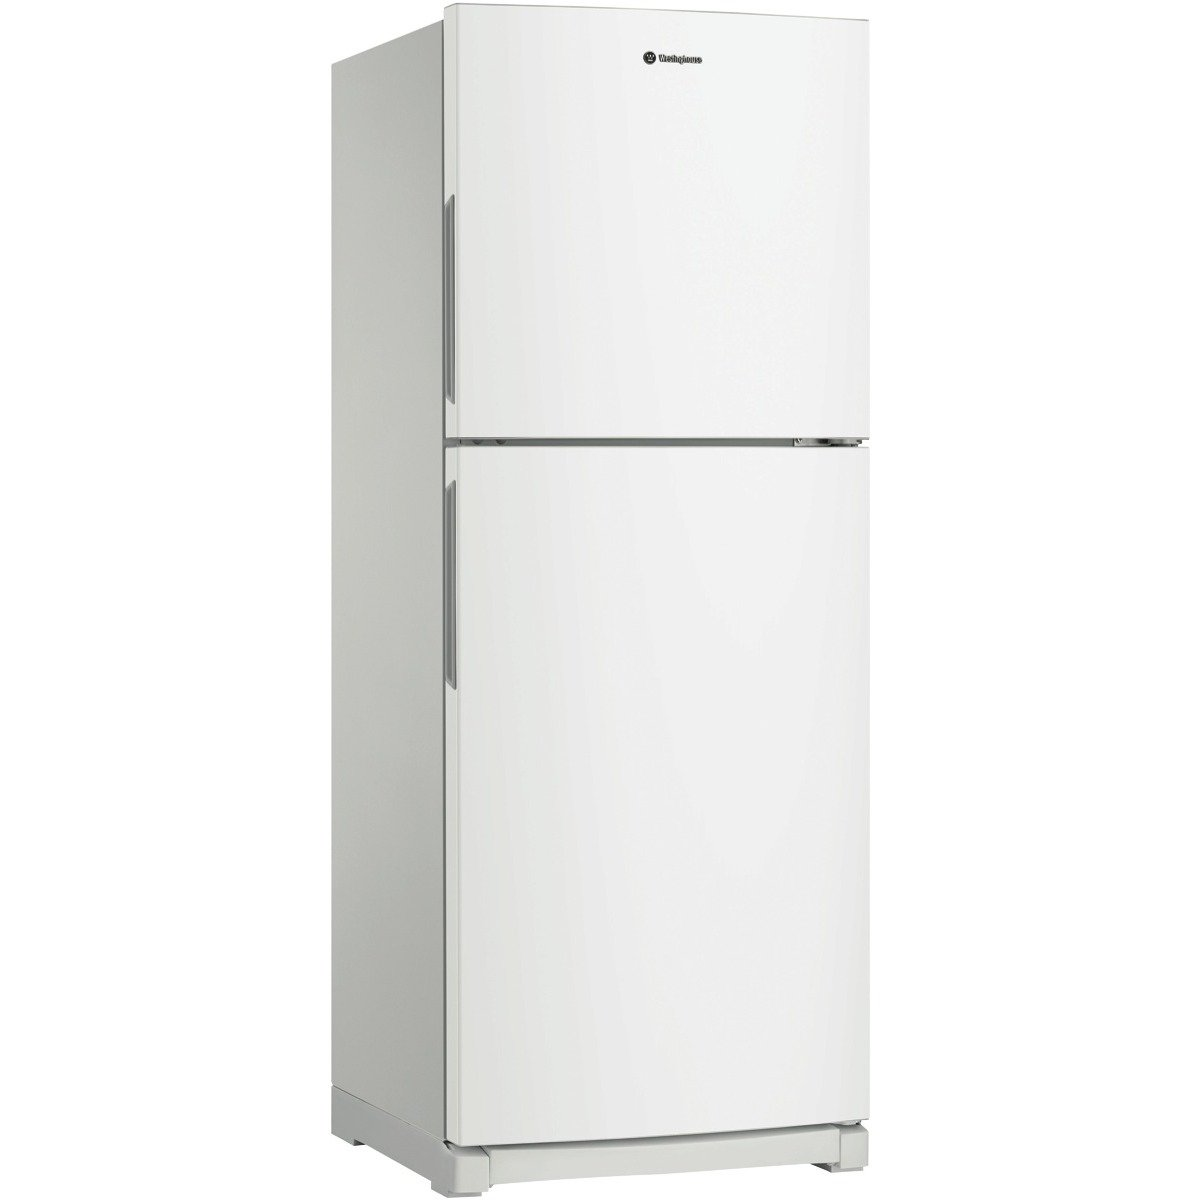 Online Fridge 230l Westinghouse Fridge Wtb2300wc Hero